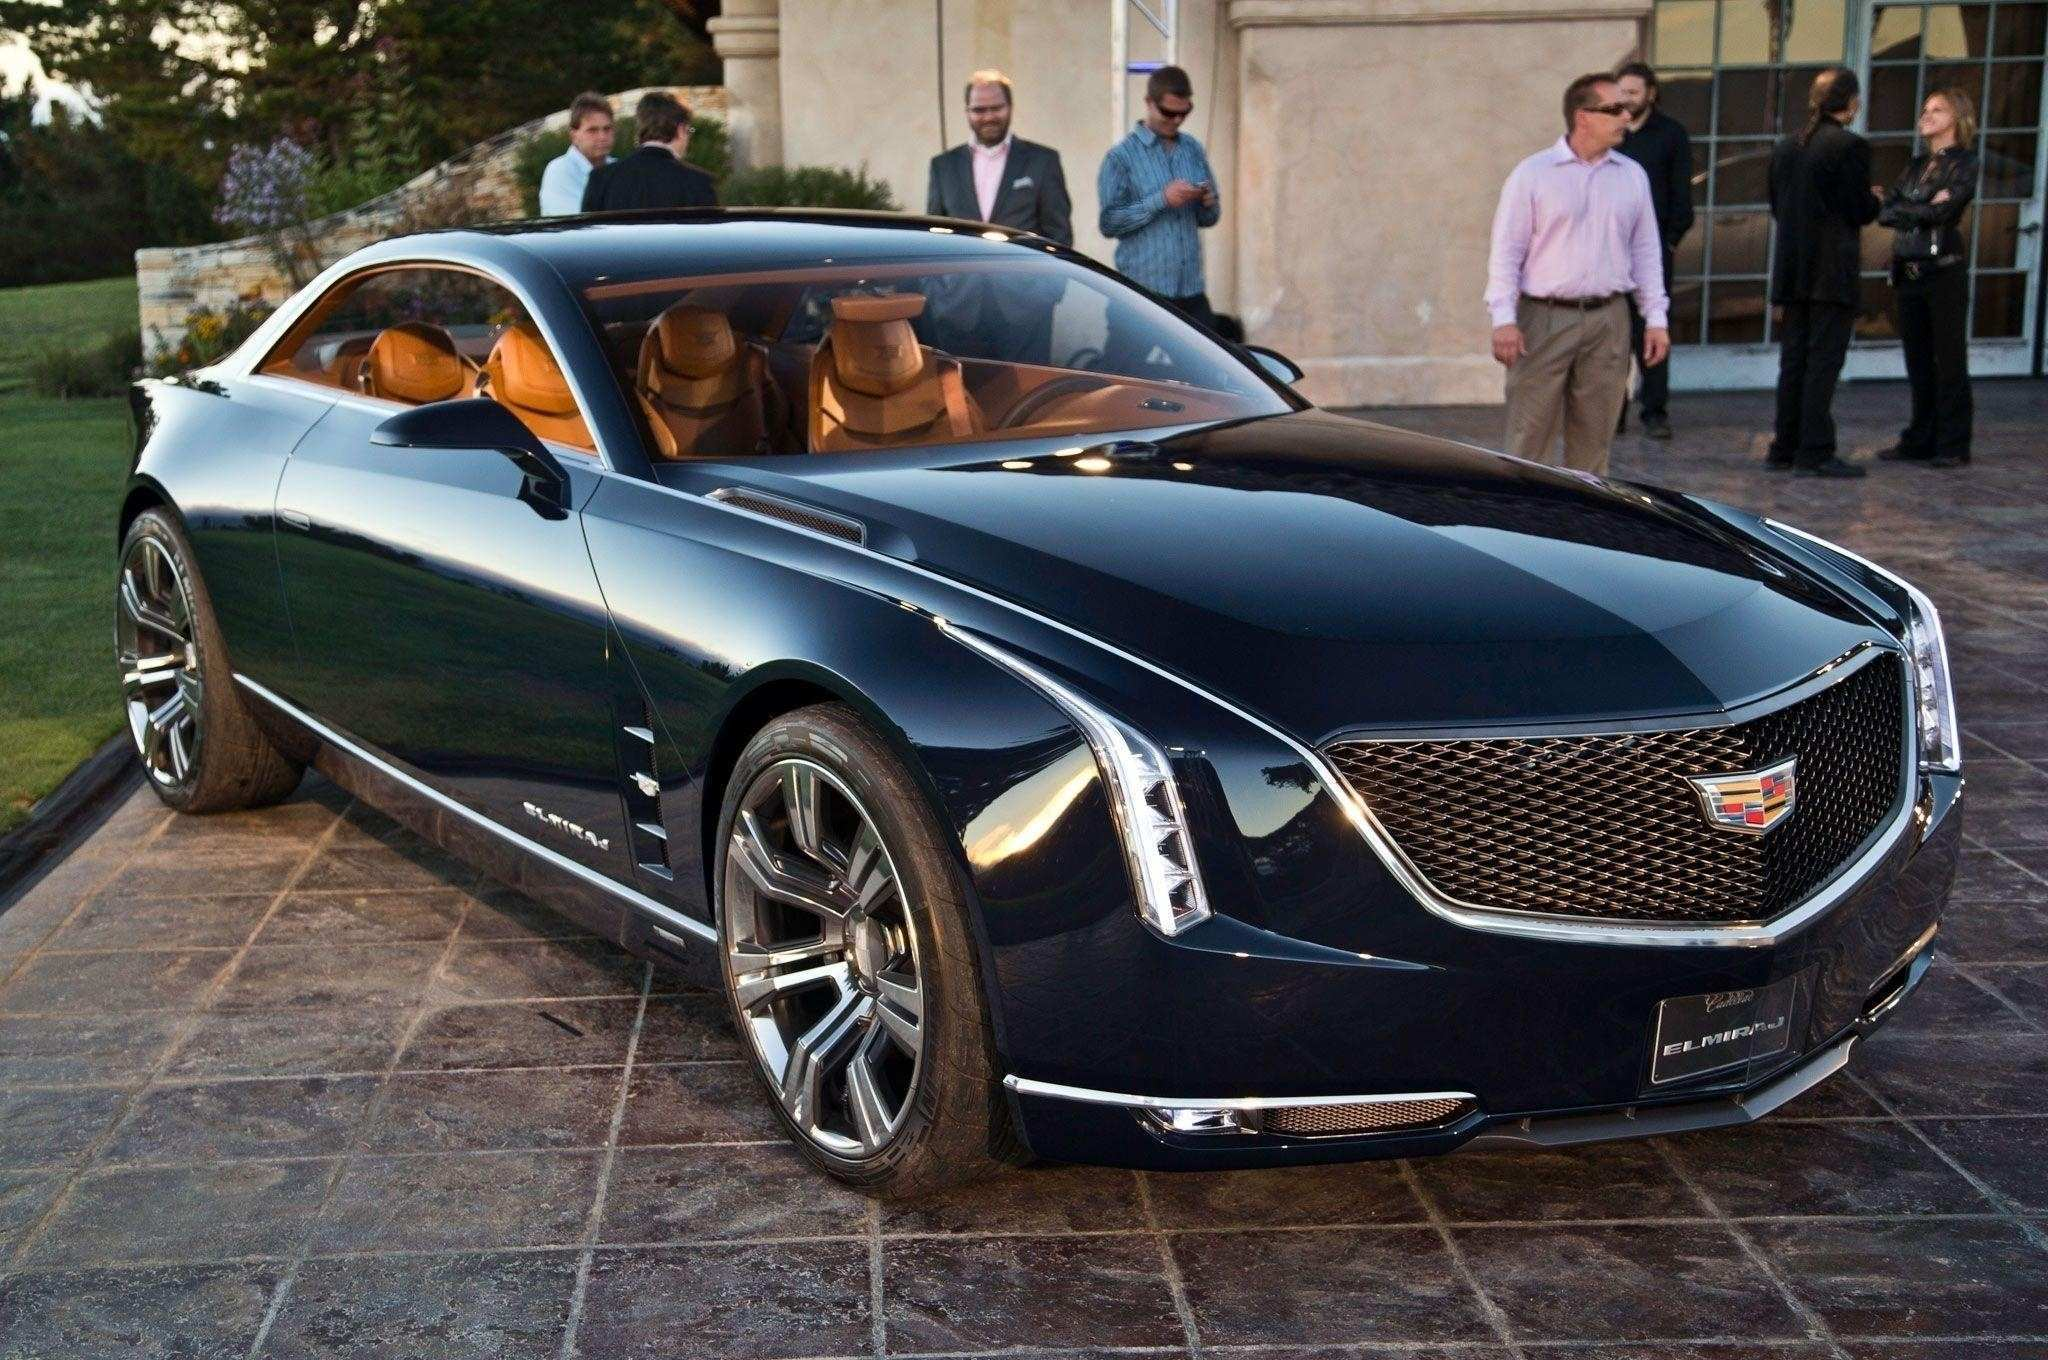 64 New The Cadillac Deville 2019 New Concept Release Date with The Cadillac Deville 2019 New Concept